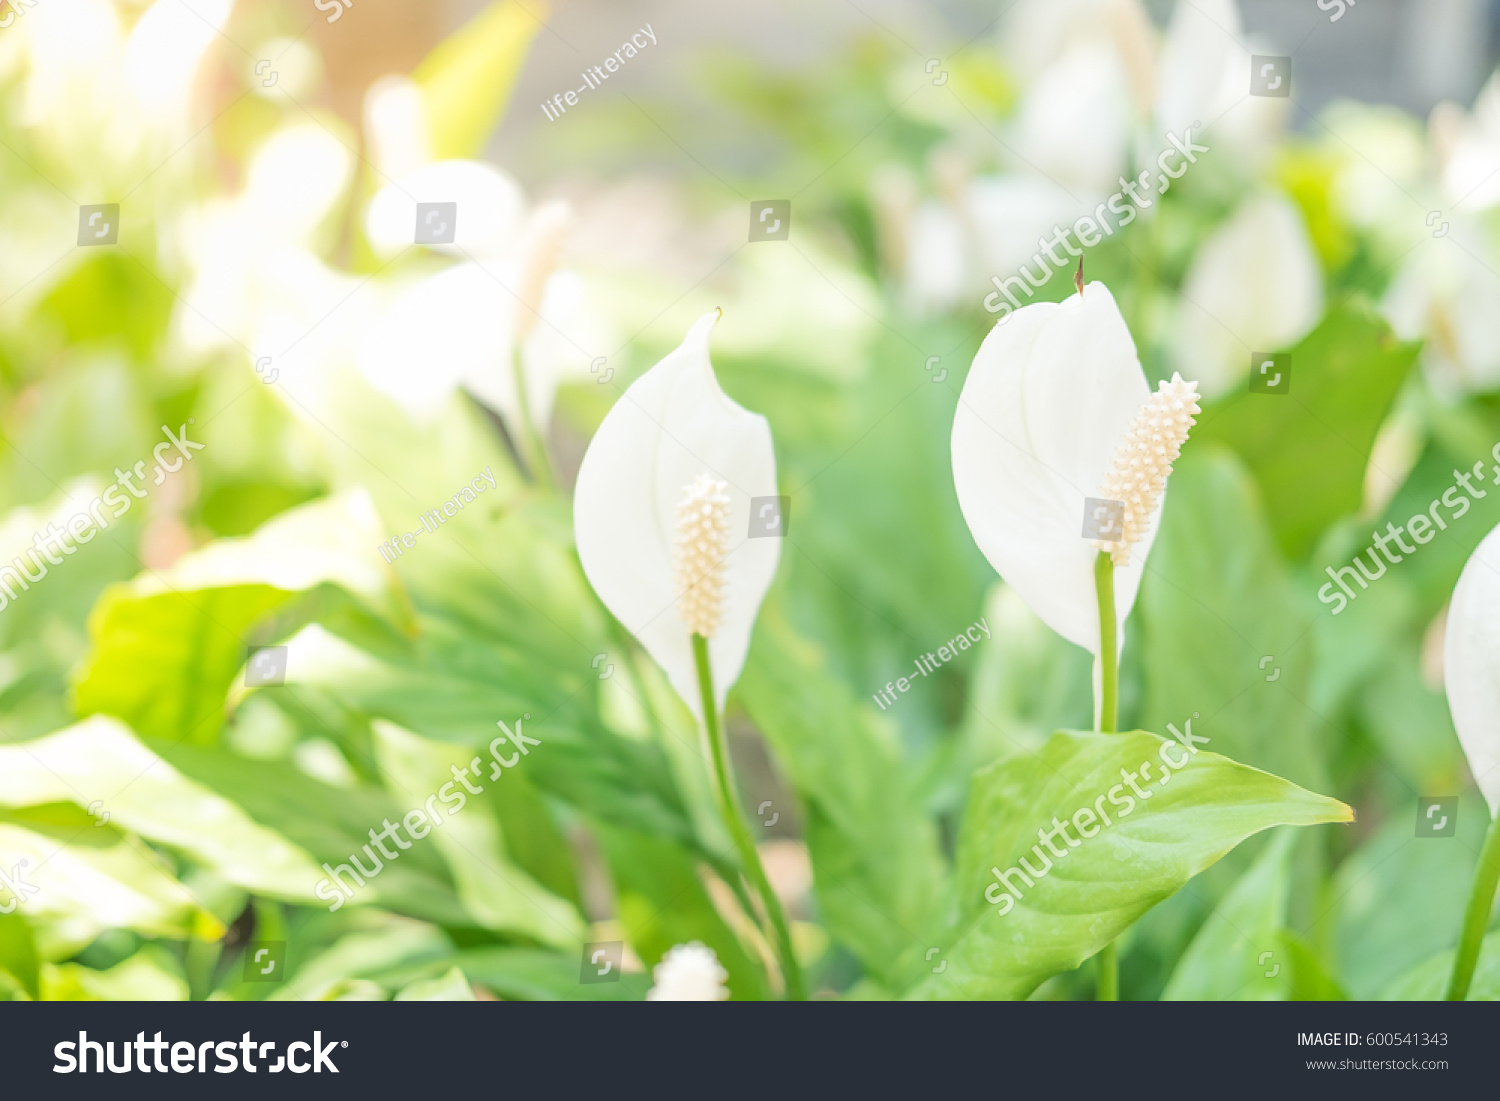 Royalty Free White Anthurium Flower With Green Leaf 600541343